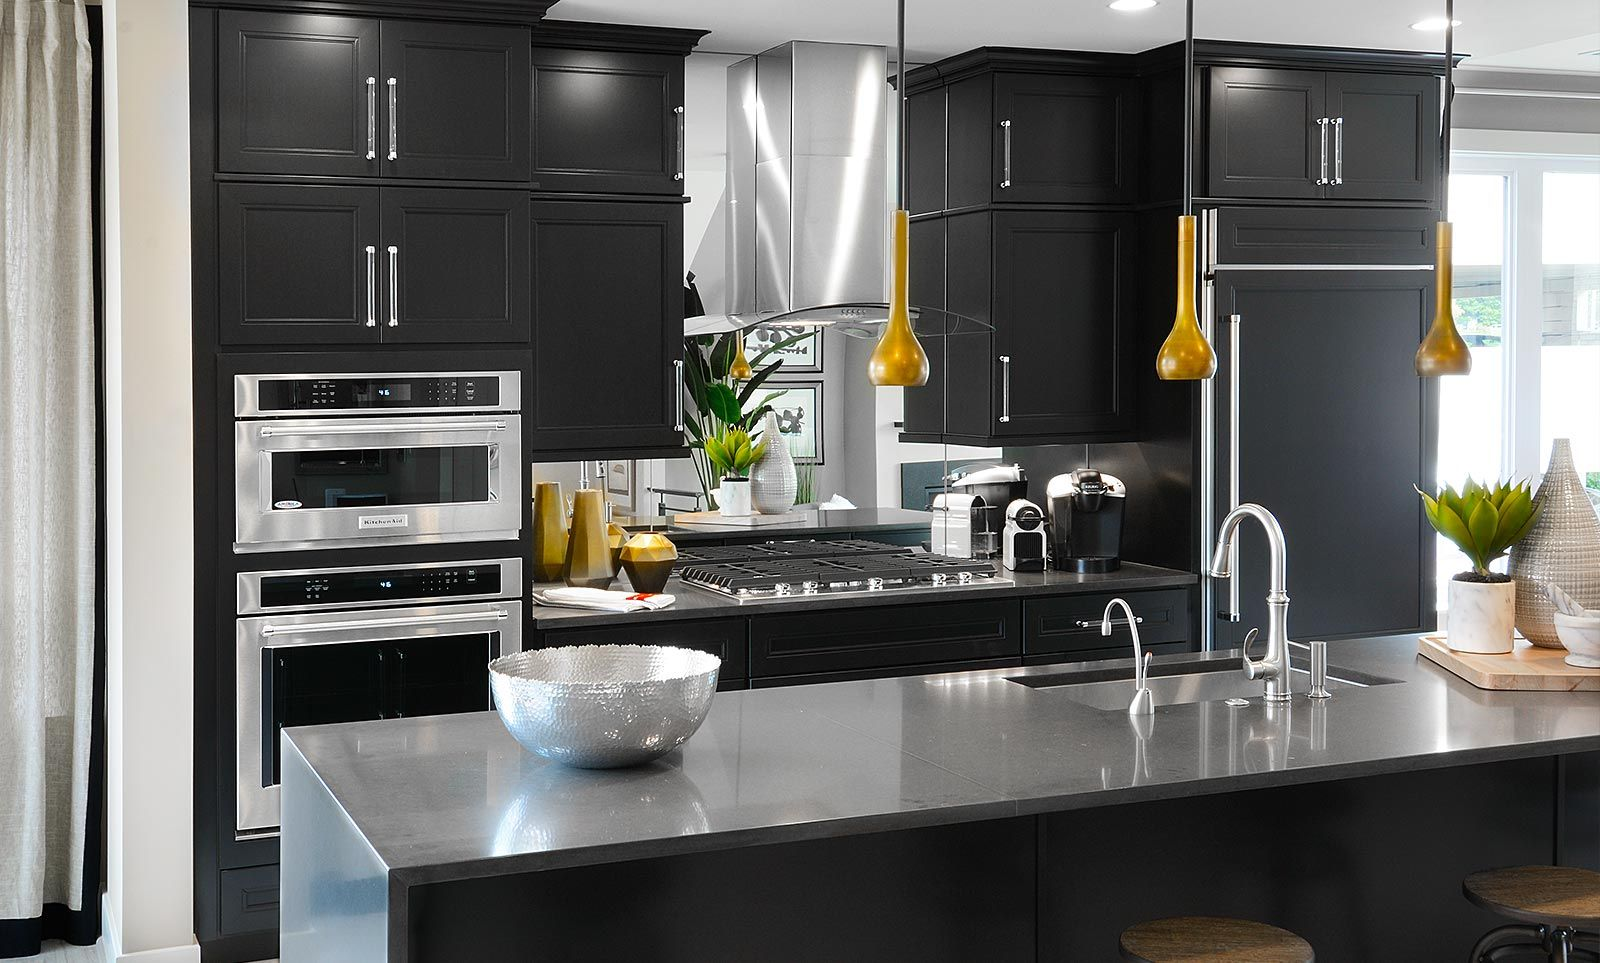 This Contemporary Kitchen With Sleek Black Cabinets And Dark Gray Quartz Countertops Can Be Found Gray Quartz Countertops Contemporary Kitchen Luxury Townhomes